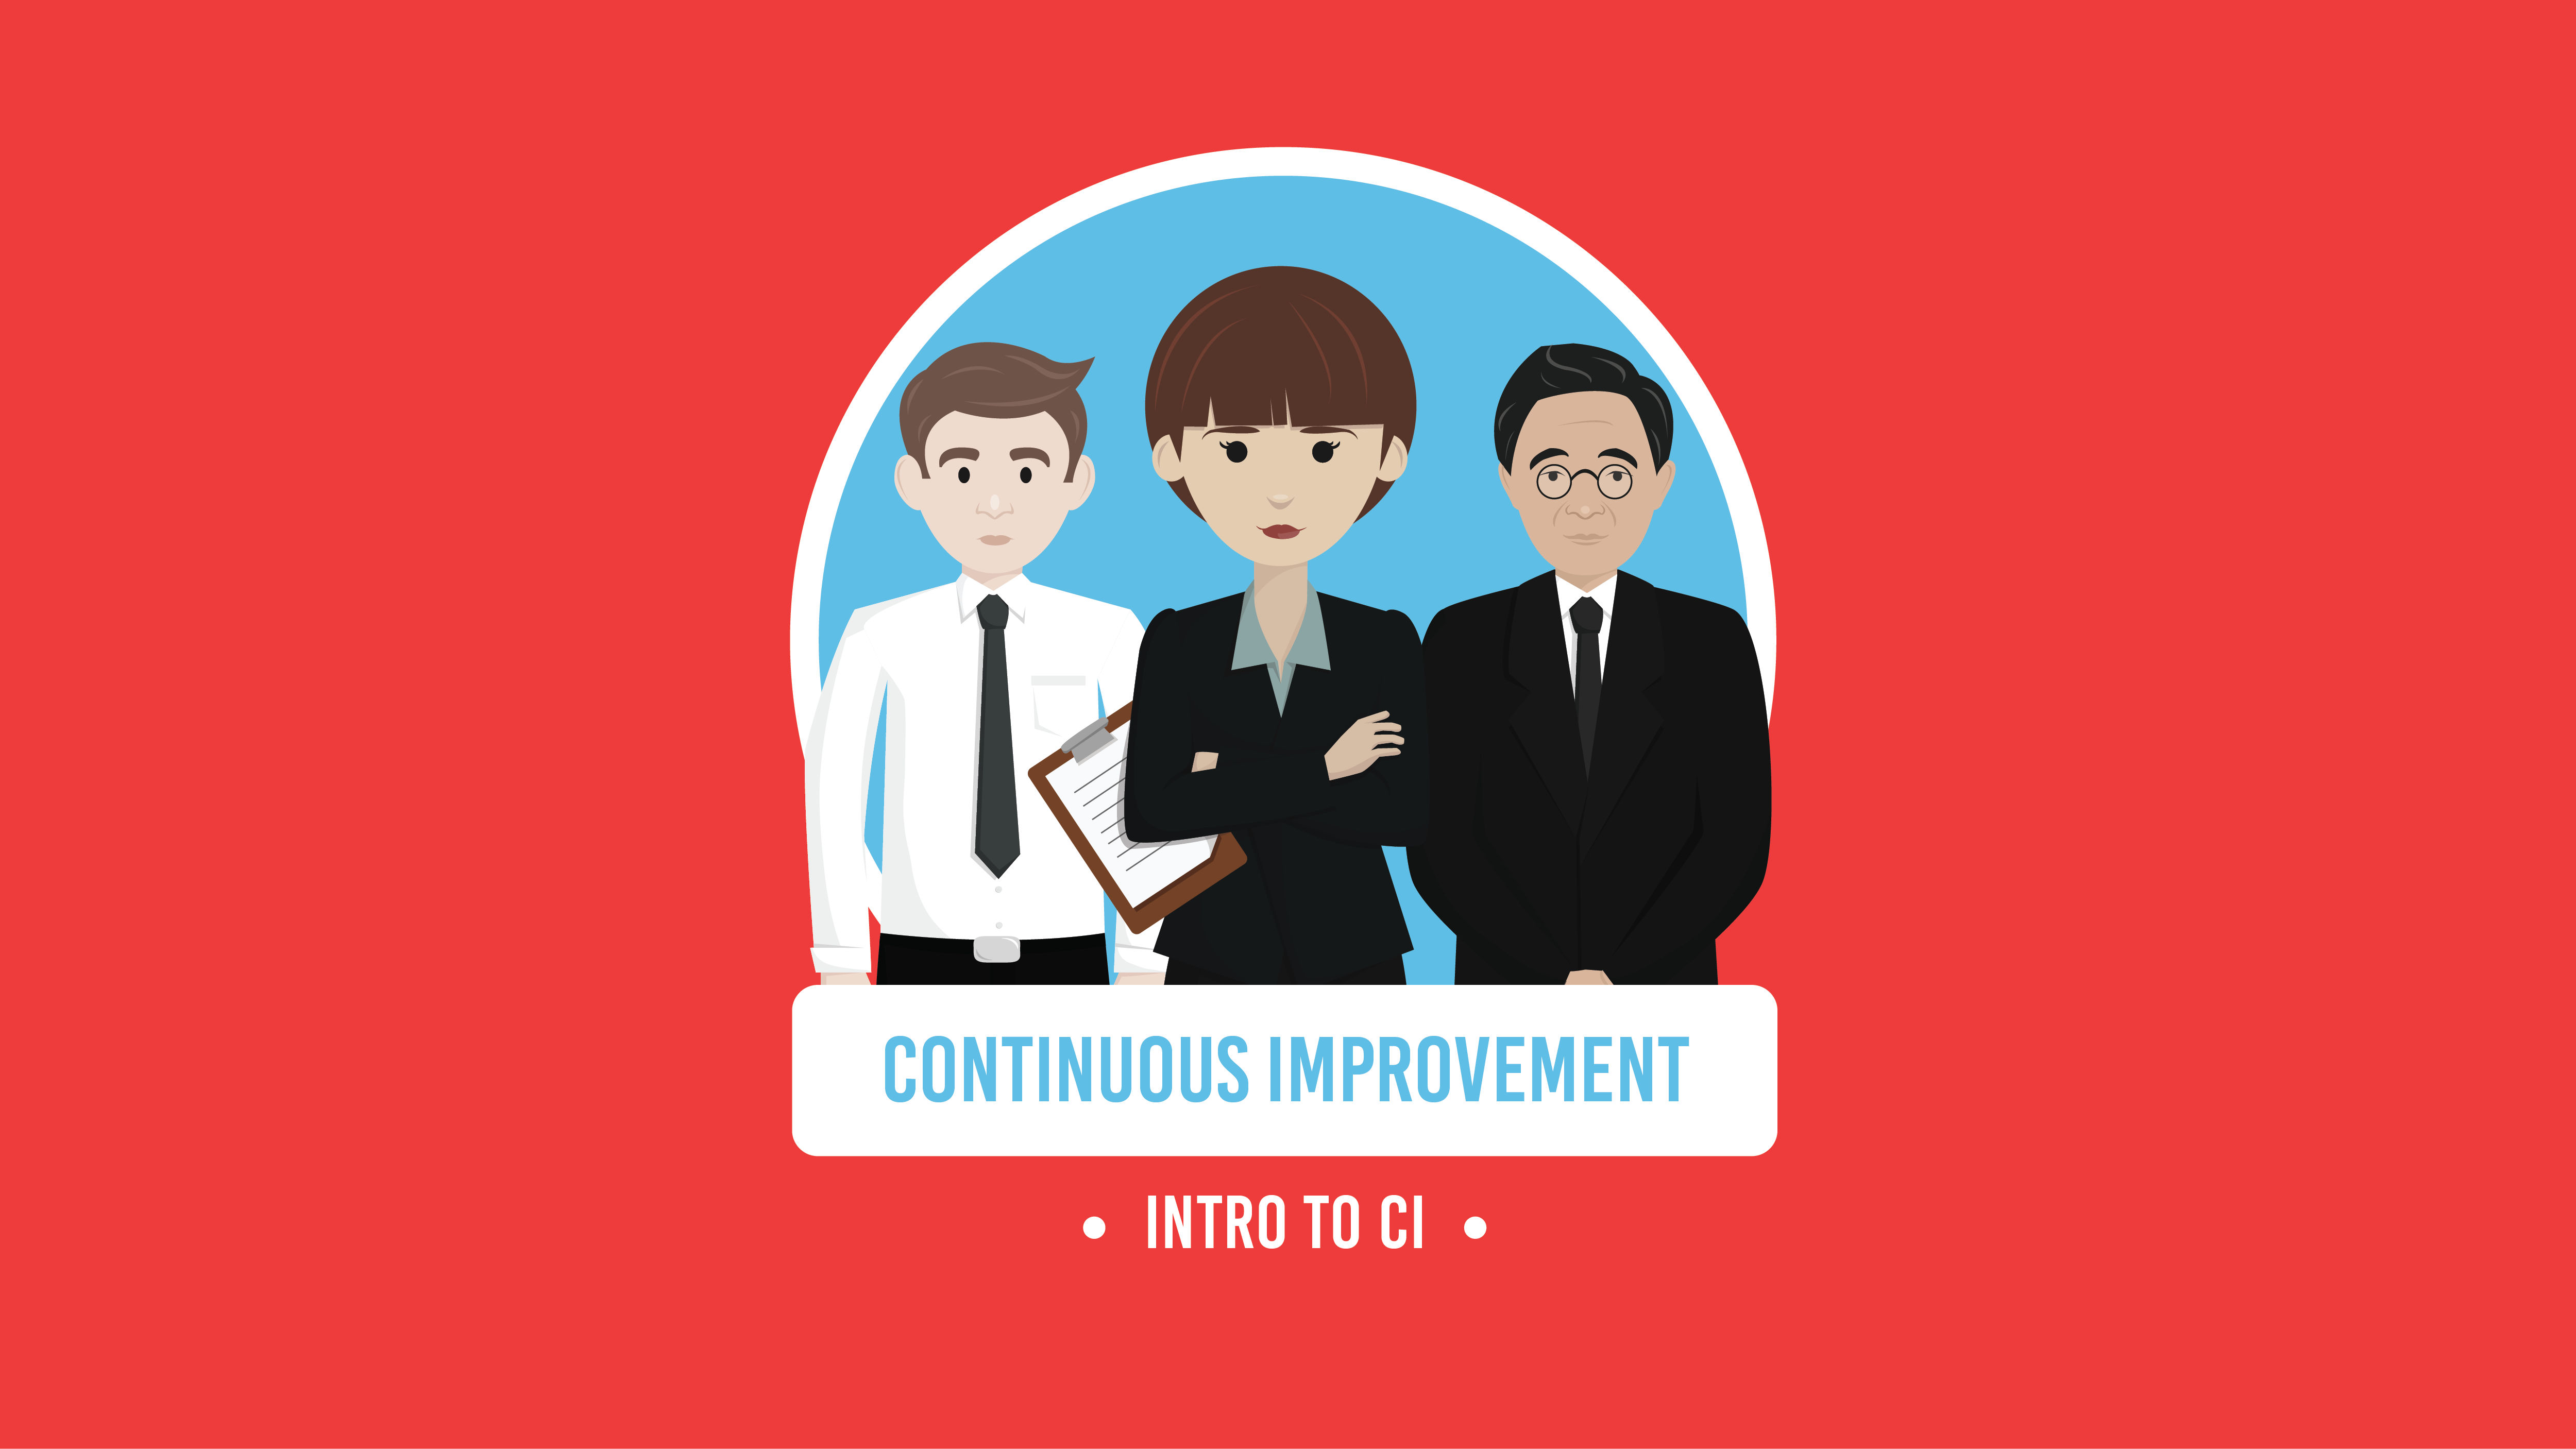 Introduction to Continuous Improvement image